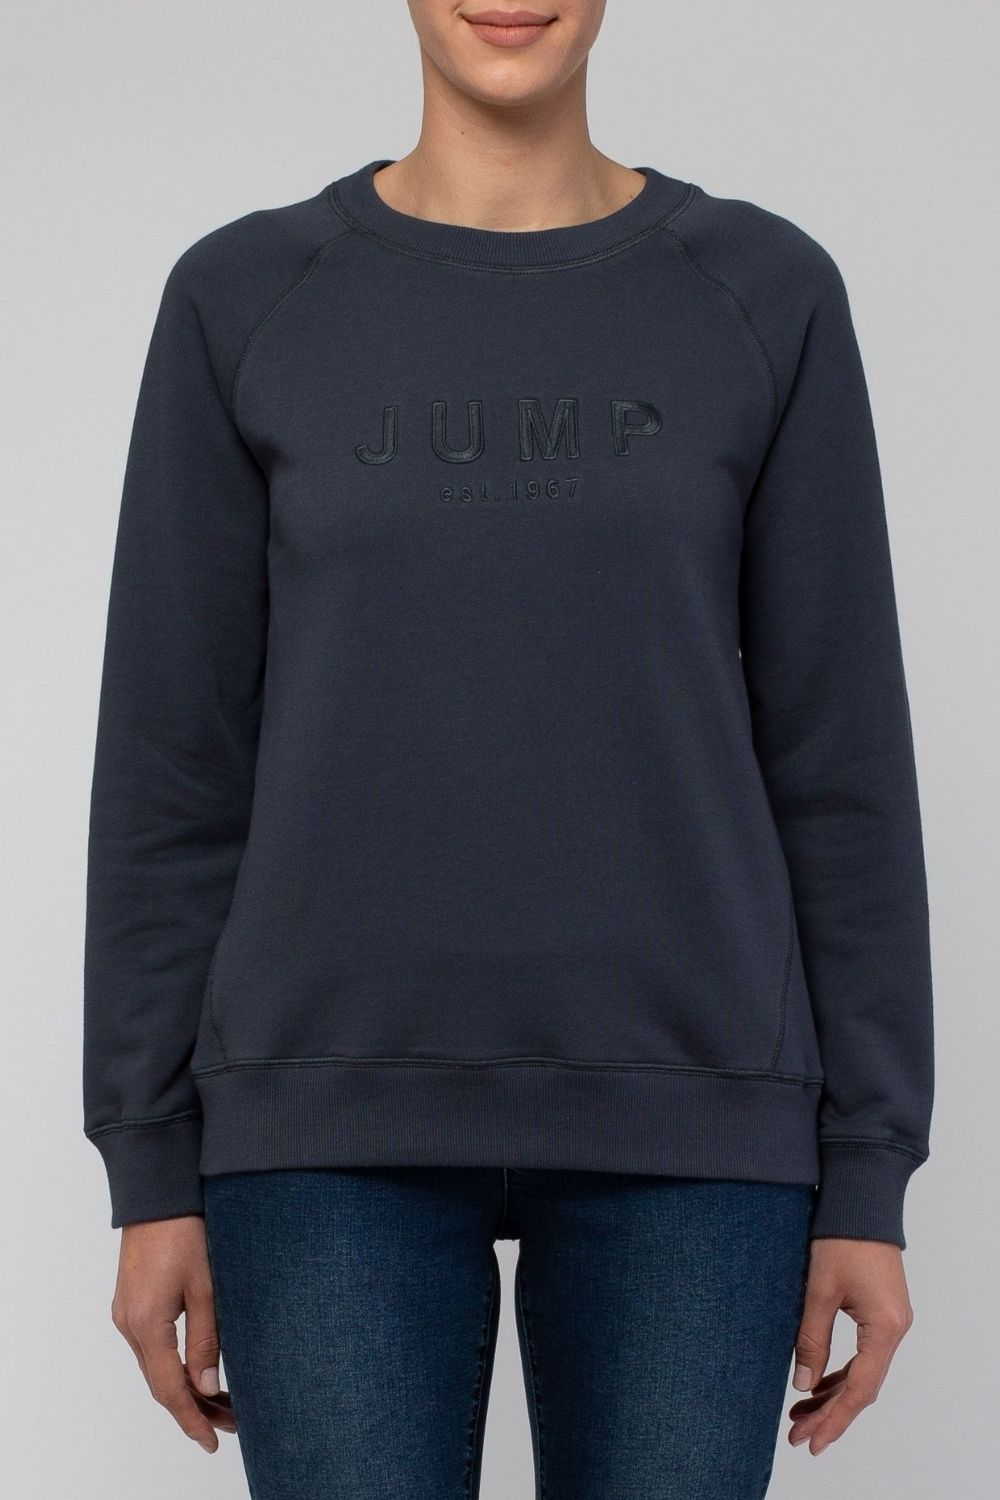 JUMP Logo Sweat Top | Grey